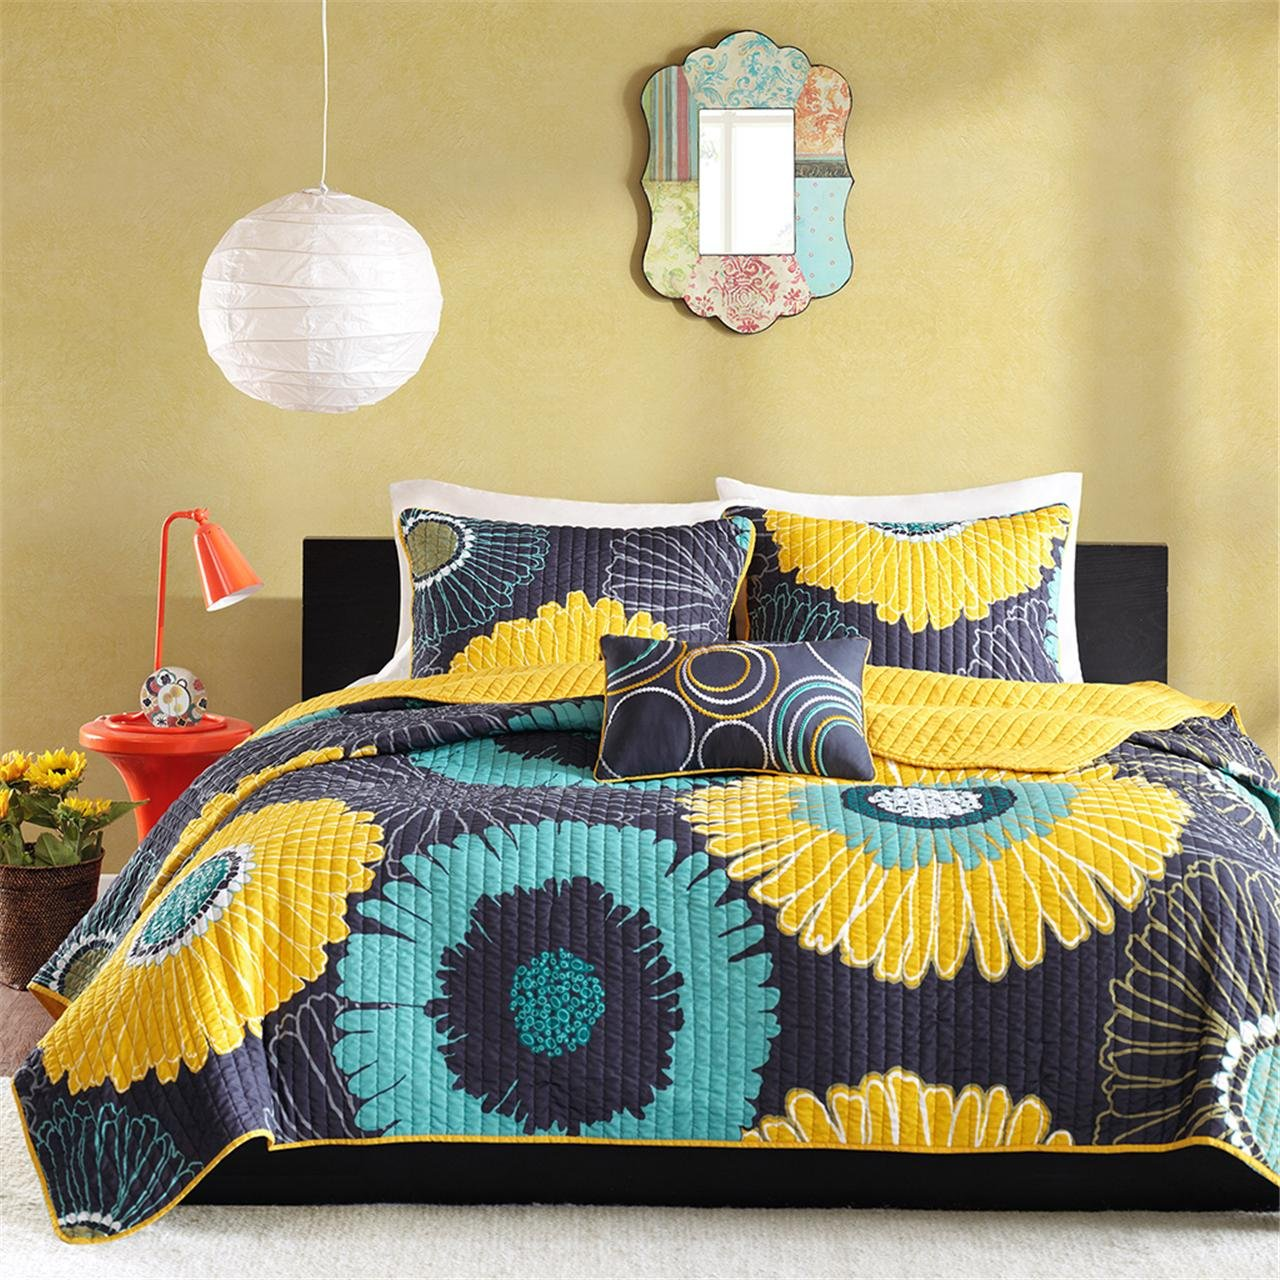 Mi-Zone Alice Full/Queen Girls Quilt Bedding Set - Yellow, Navy, Teal, Floral – 4 Piece Teen Girl Bedding Quilt Coverlets – Ultra Soft Microfiber with 100%